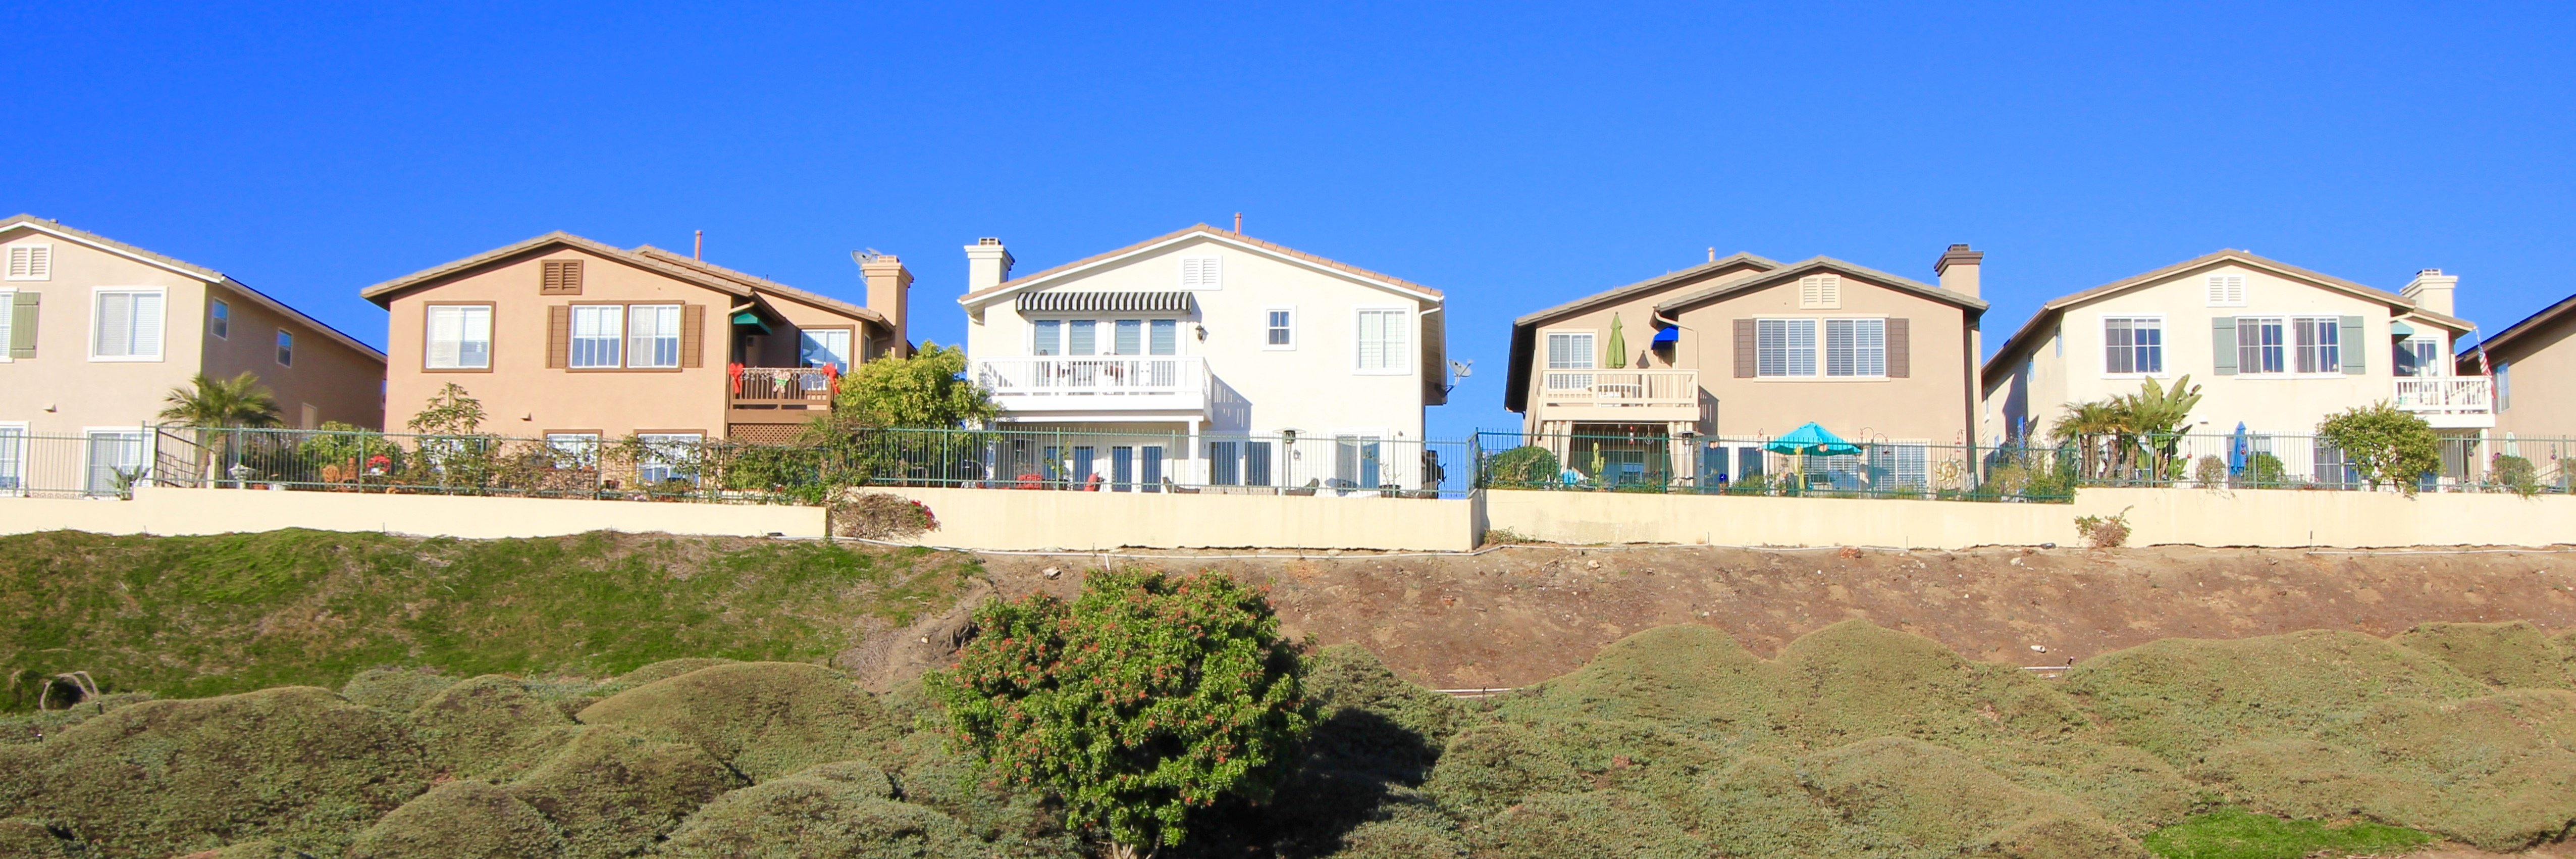 Marquesa is a community located in Dana Point Ca